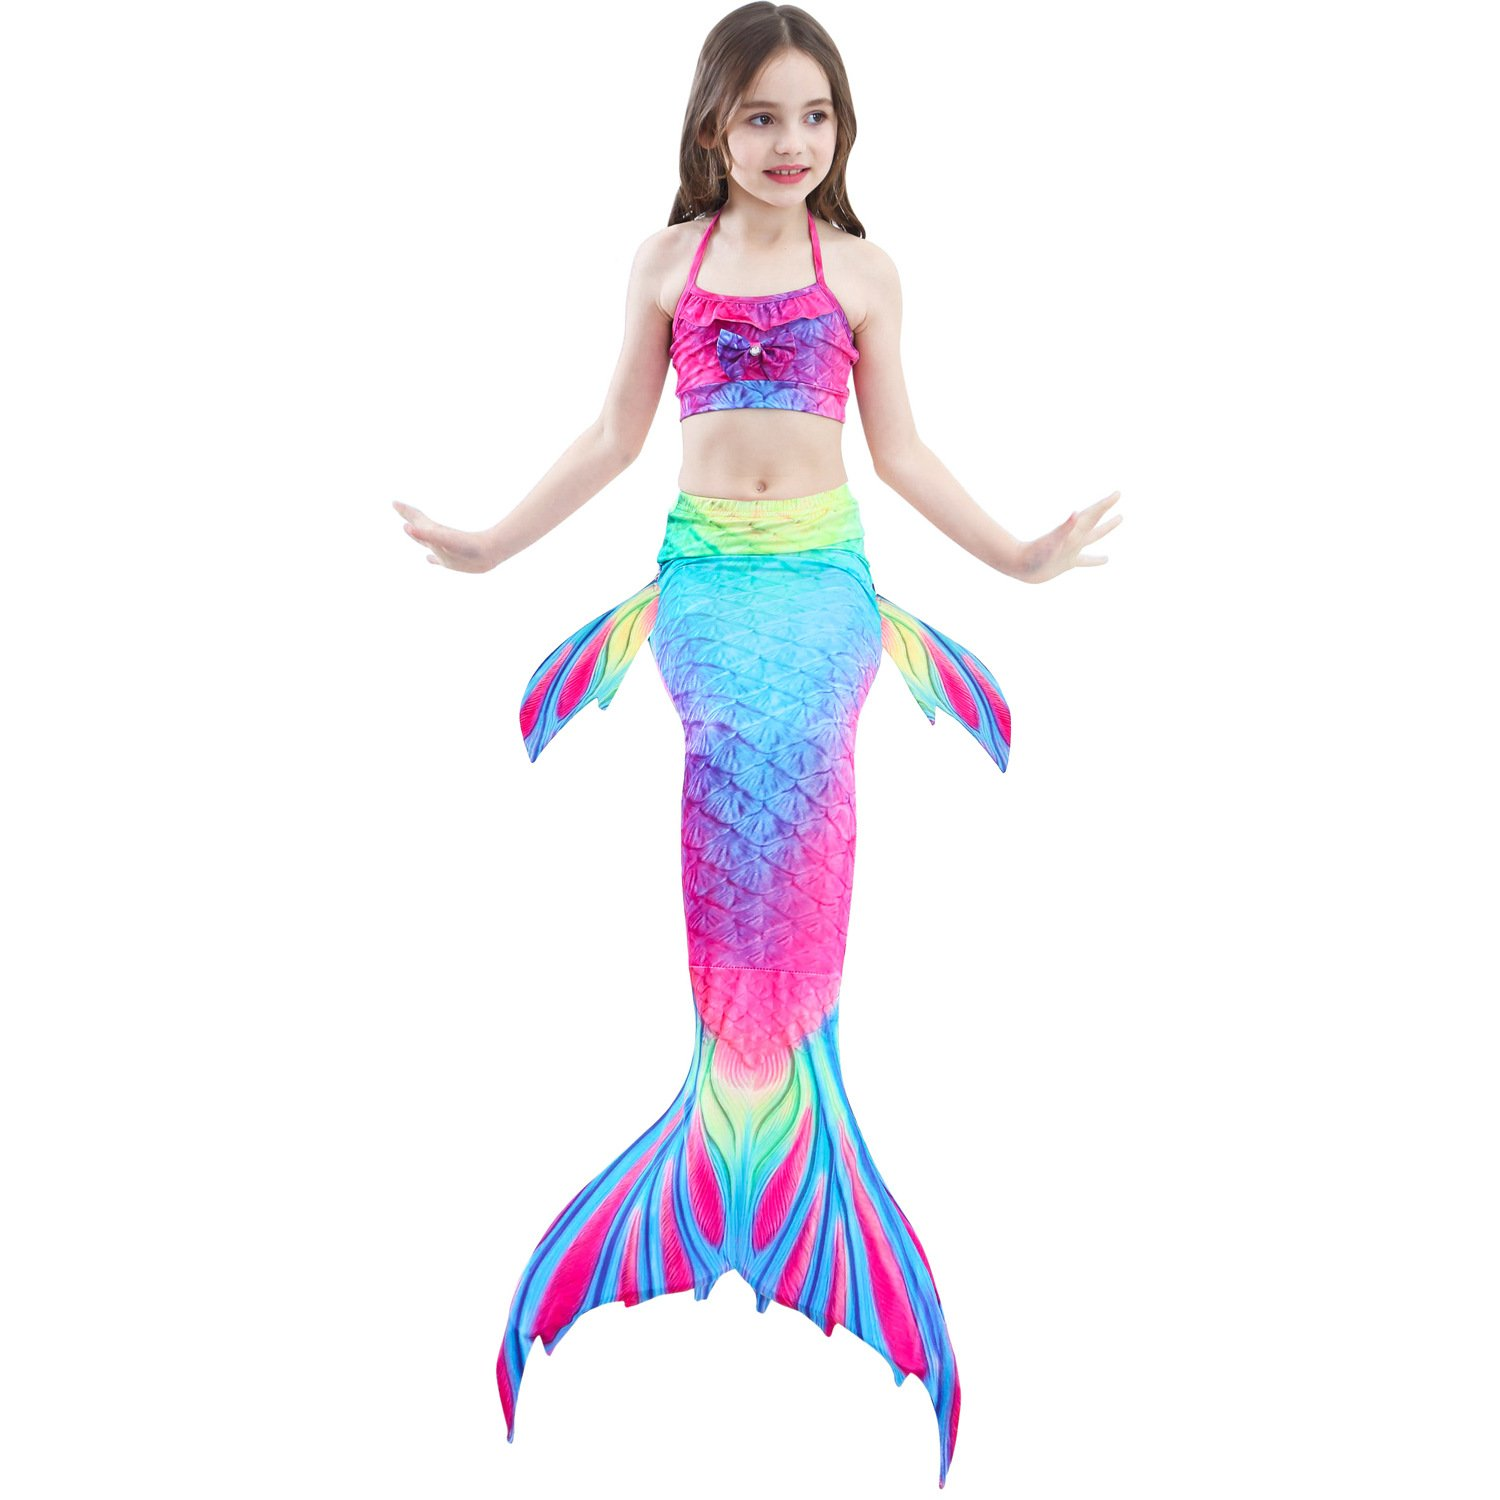 SAOMAI 3PCS Girls' Swimsuit Mermaid Tail for Swimming Tropical Bikini Halloween Masquerade Pool Party (A, 130CM)